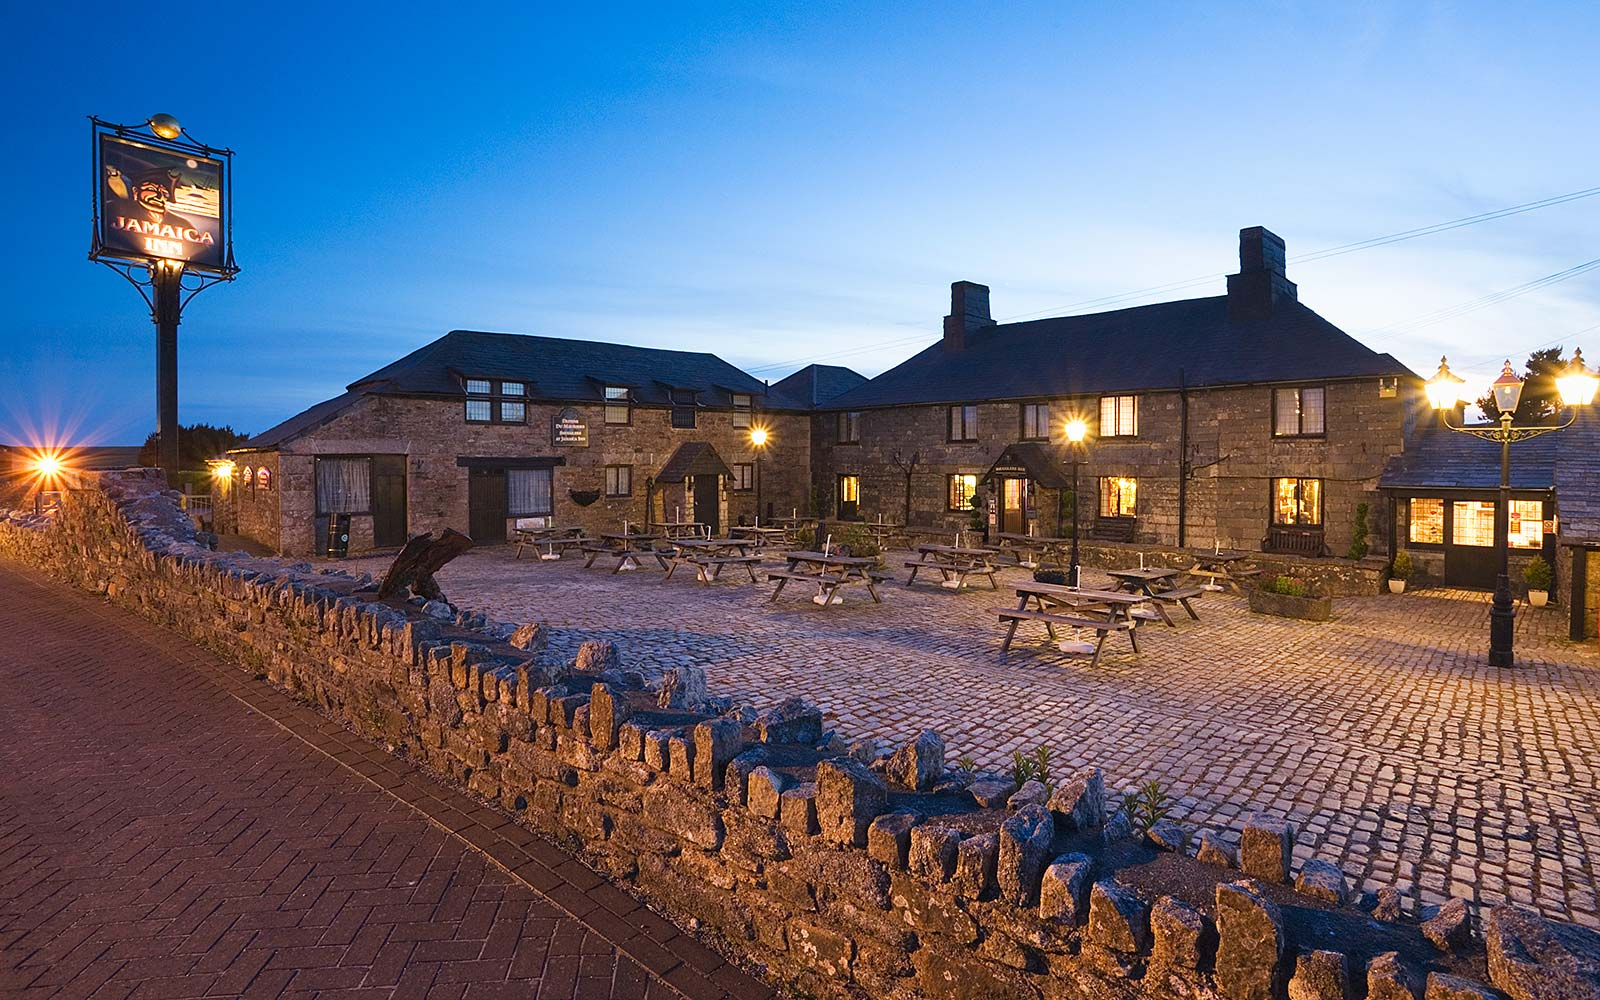 jamaica inn hotel bodmin moor cornwall england haunted castle